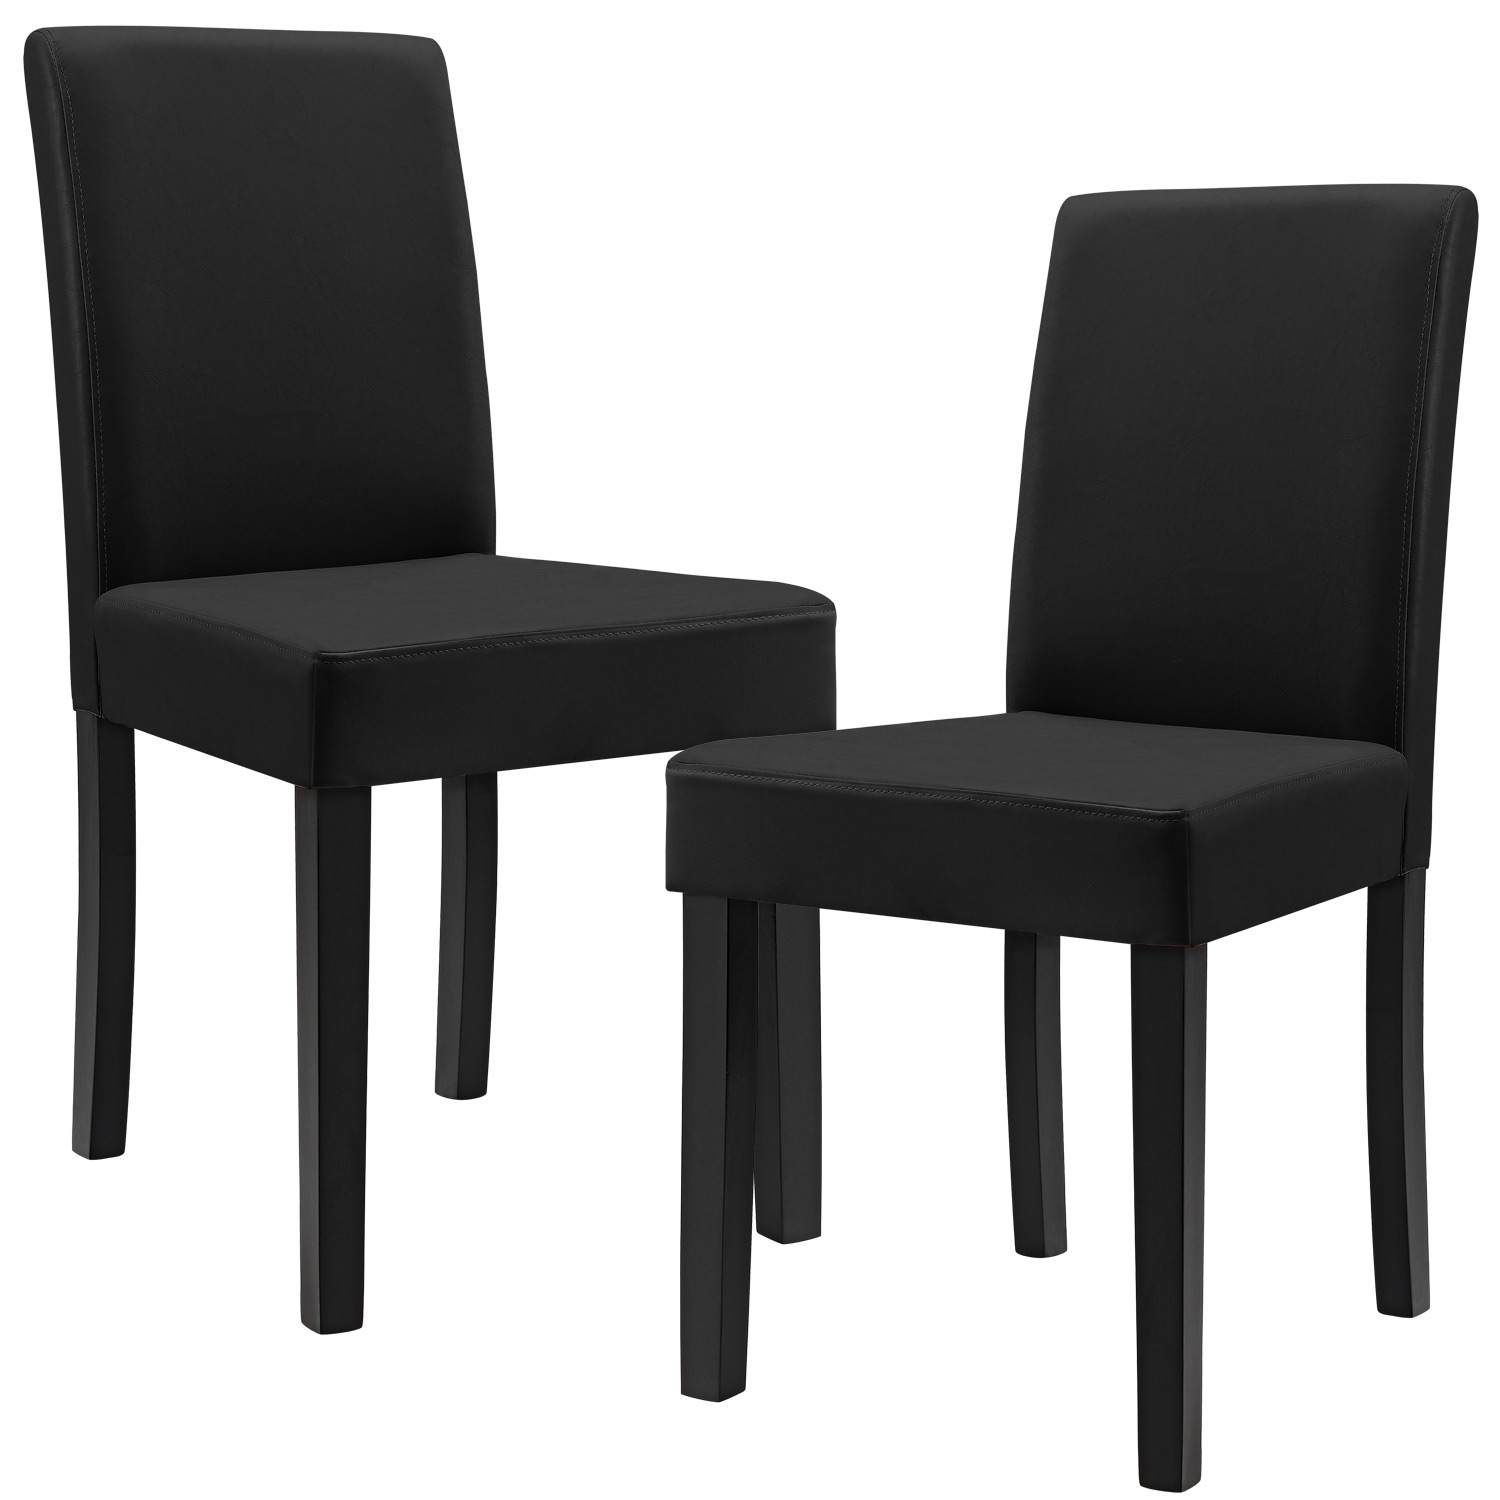 2x moderne esszimmer st hle kunst leder polster stuhl hochlehner ebay. Black Bedroom Furniture Sets. Home Design Ideas